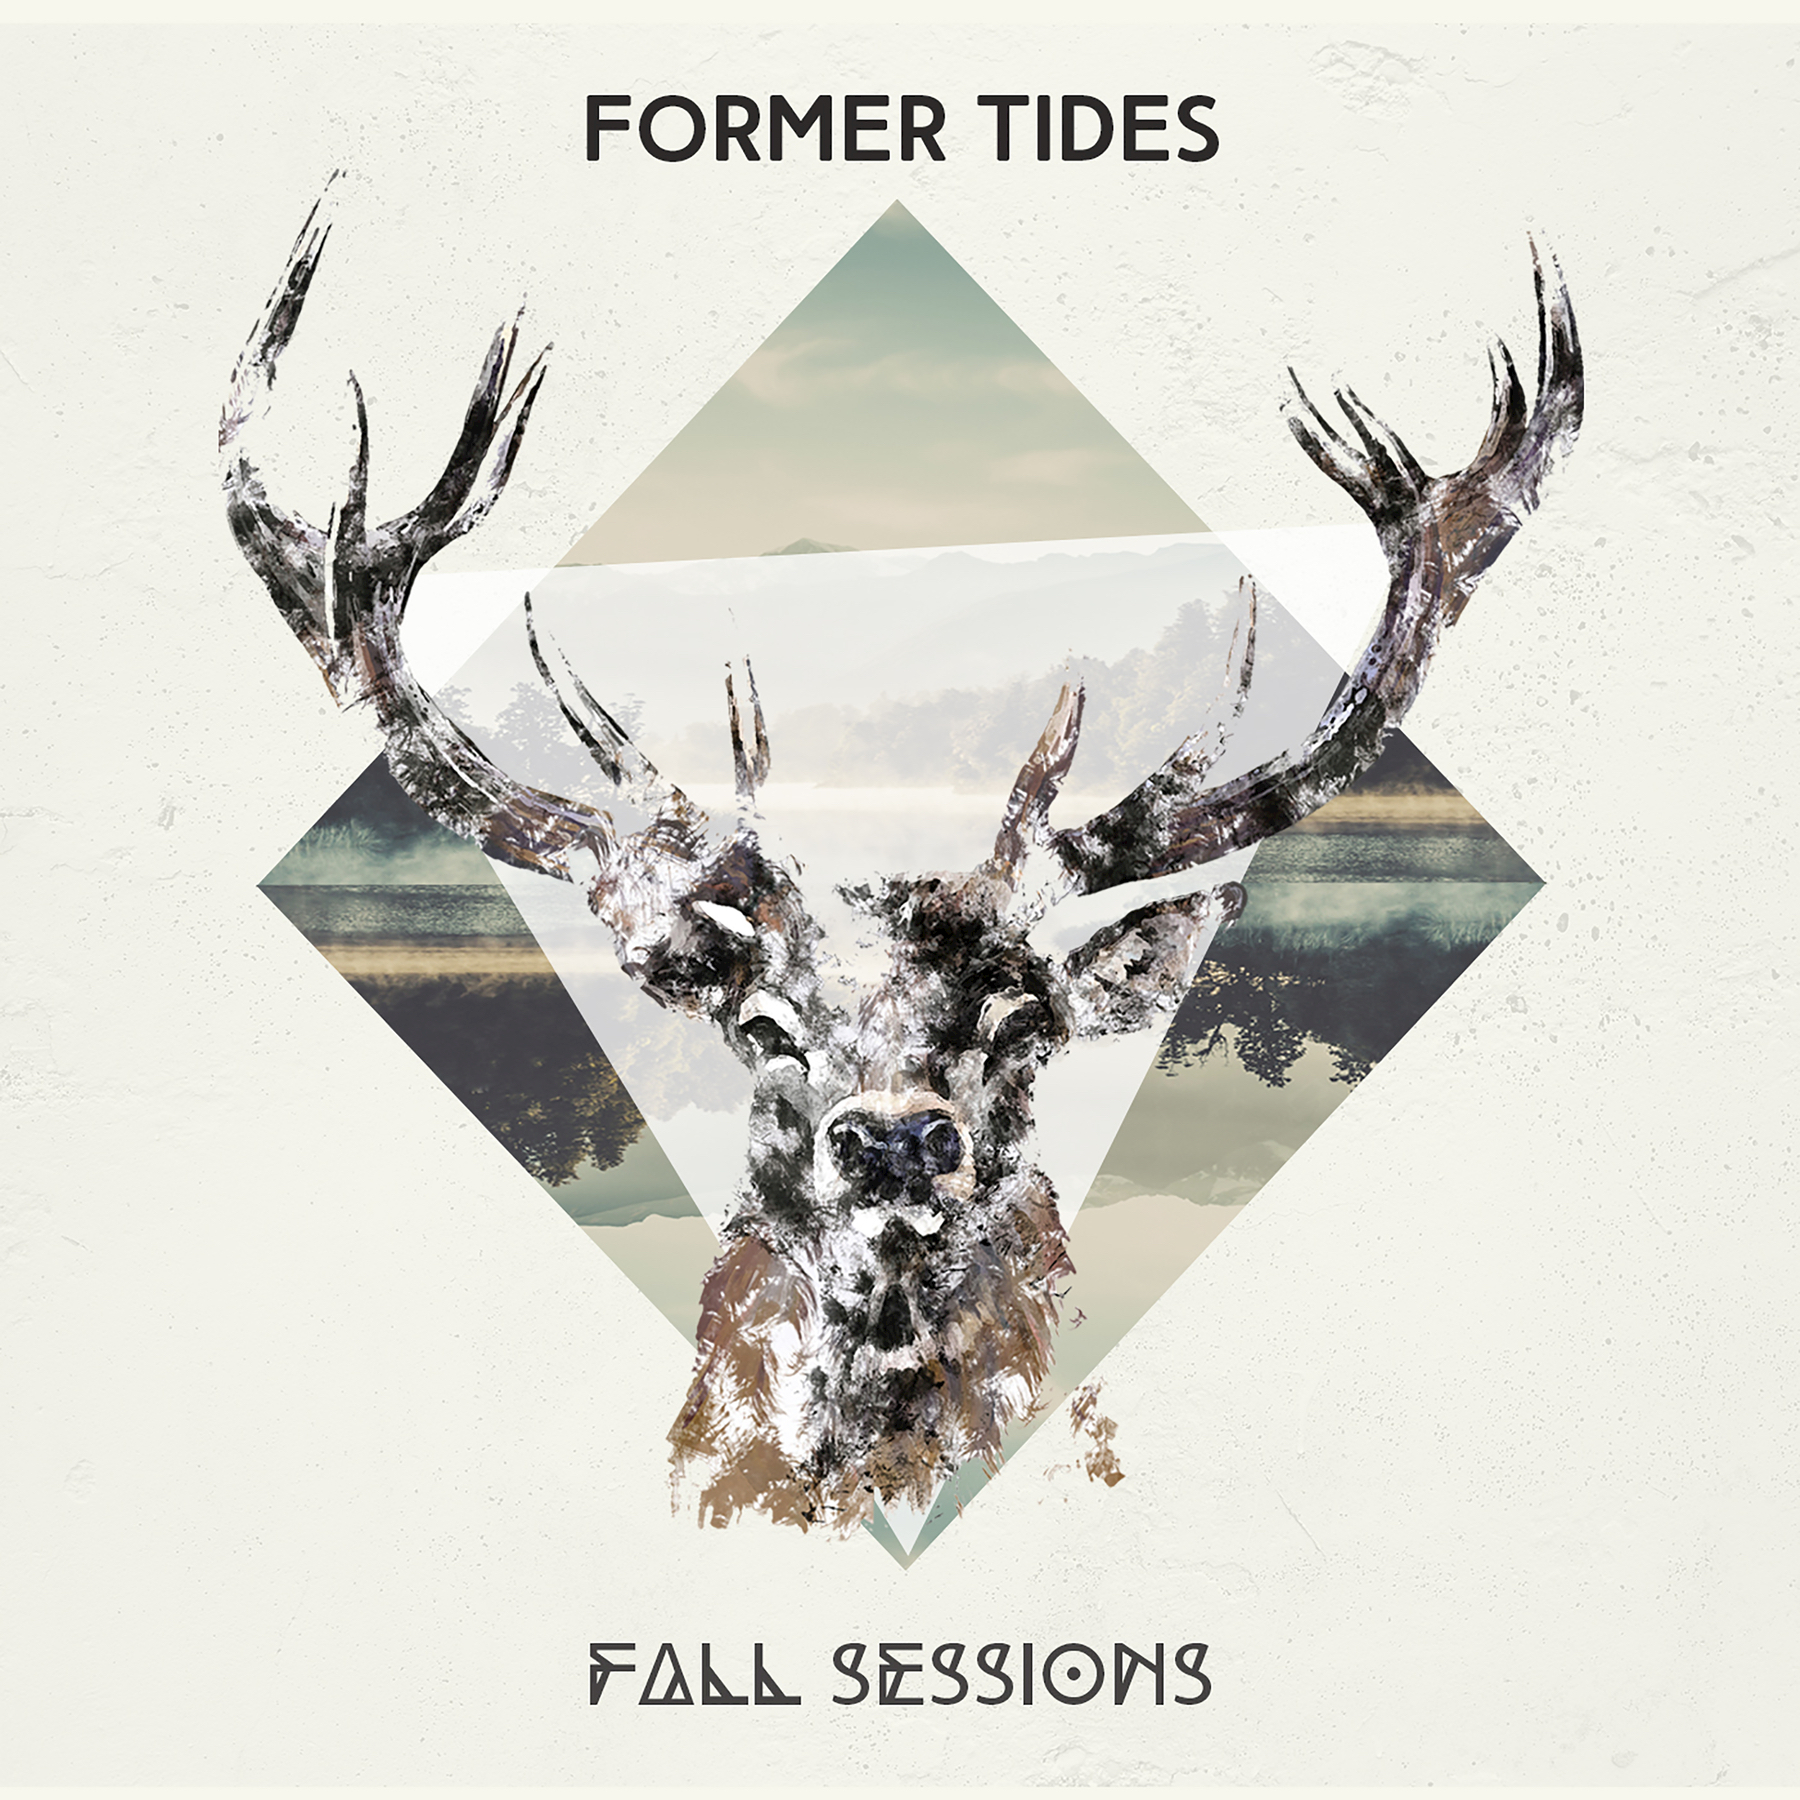 Former Tides - Fall Sessions [EP] (2017)